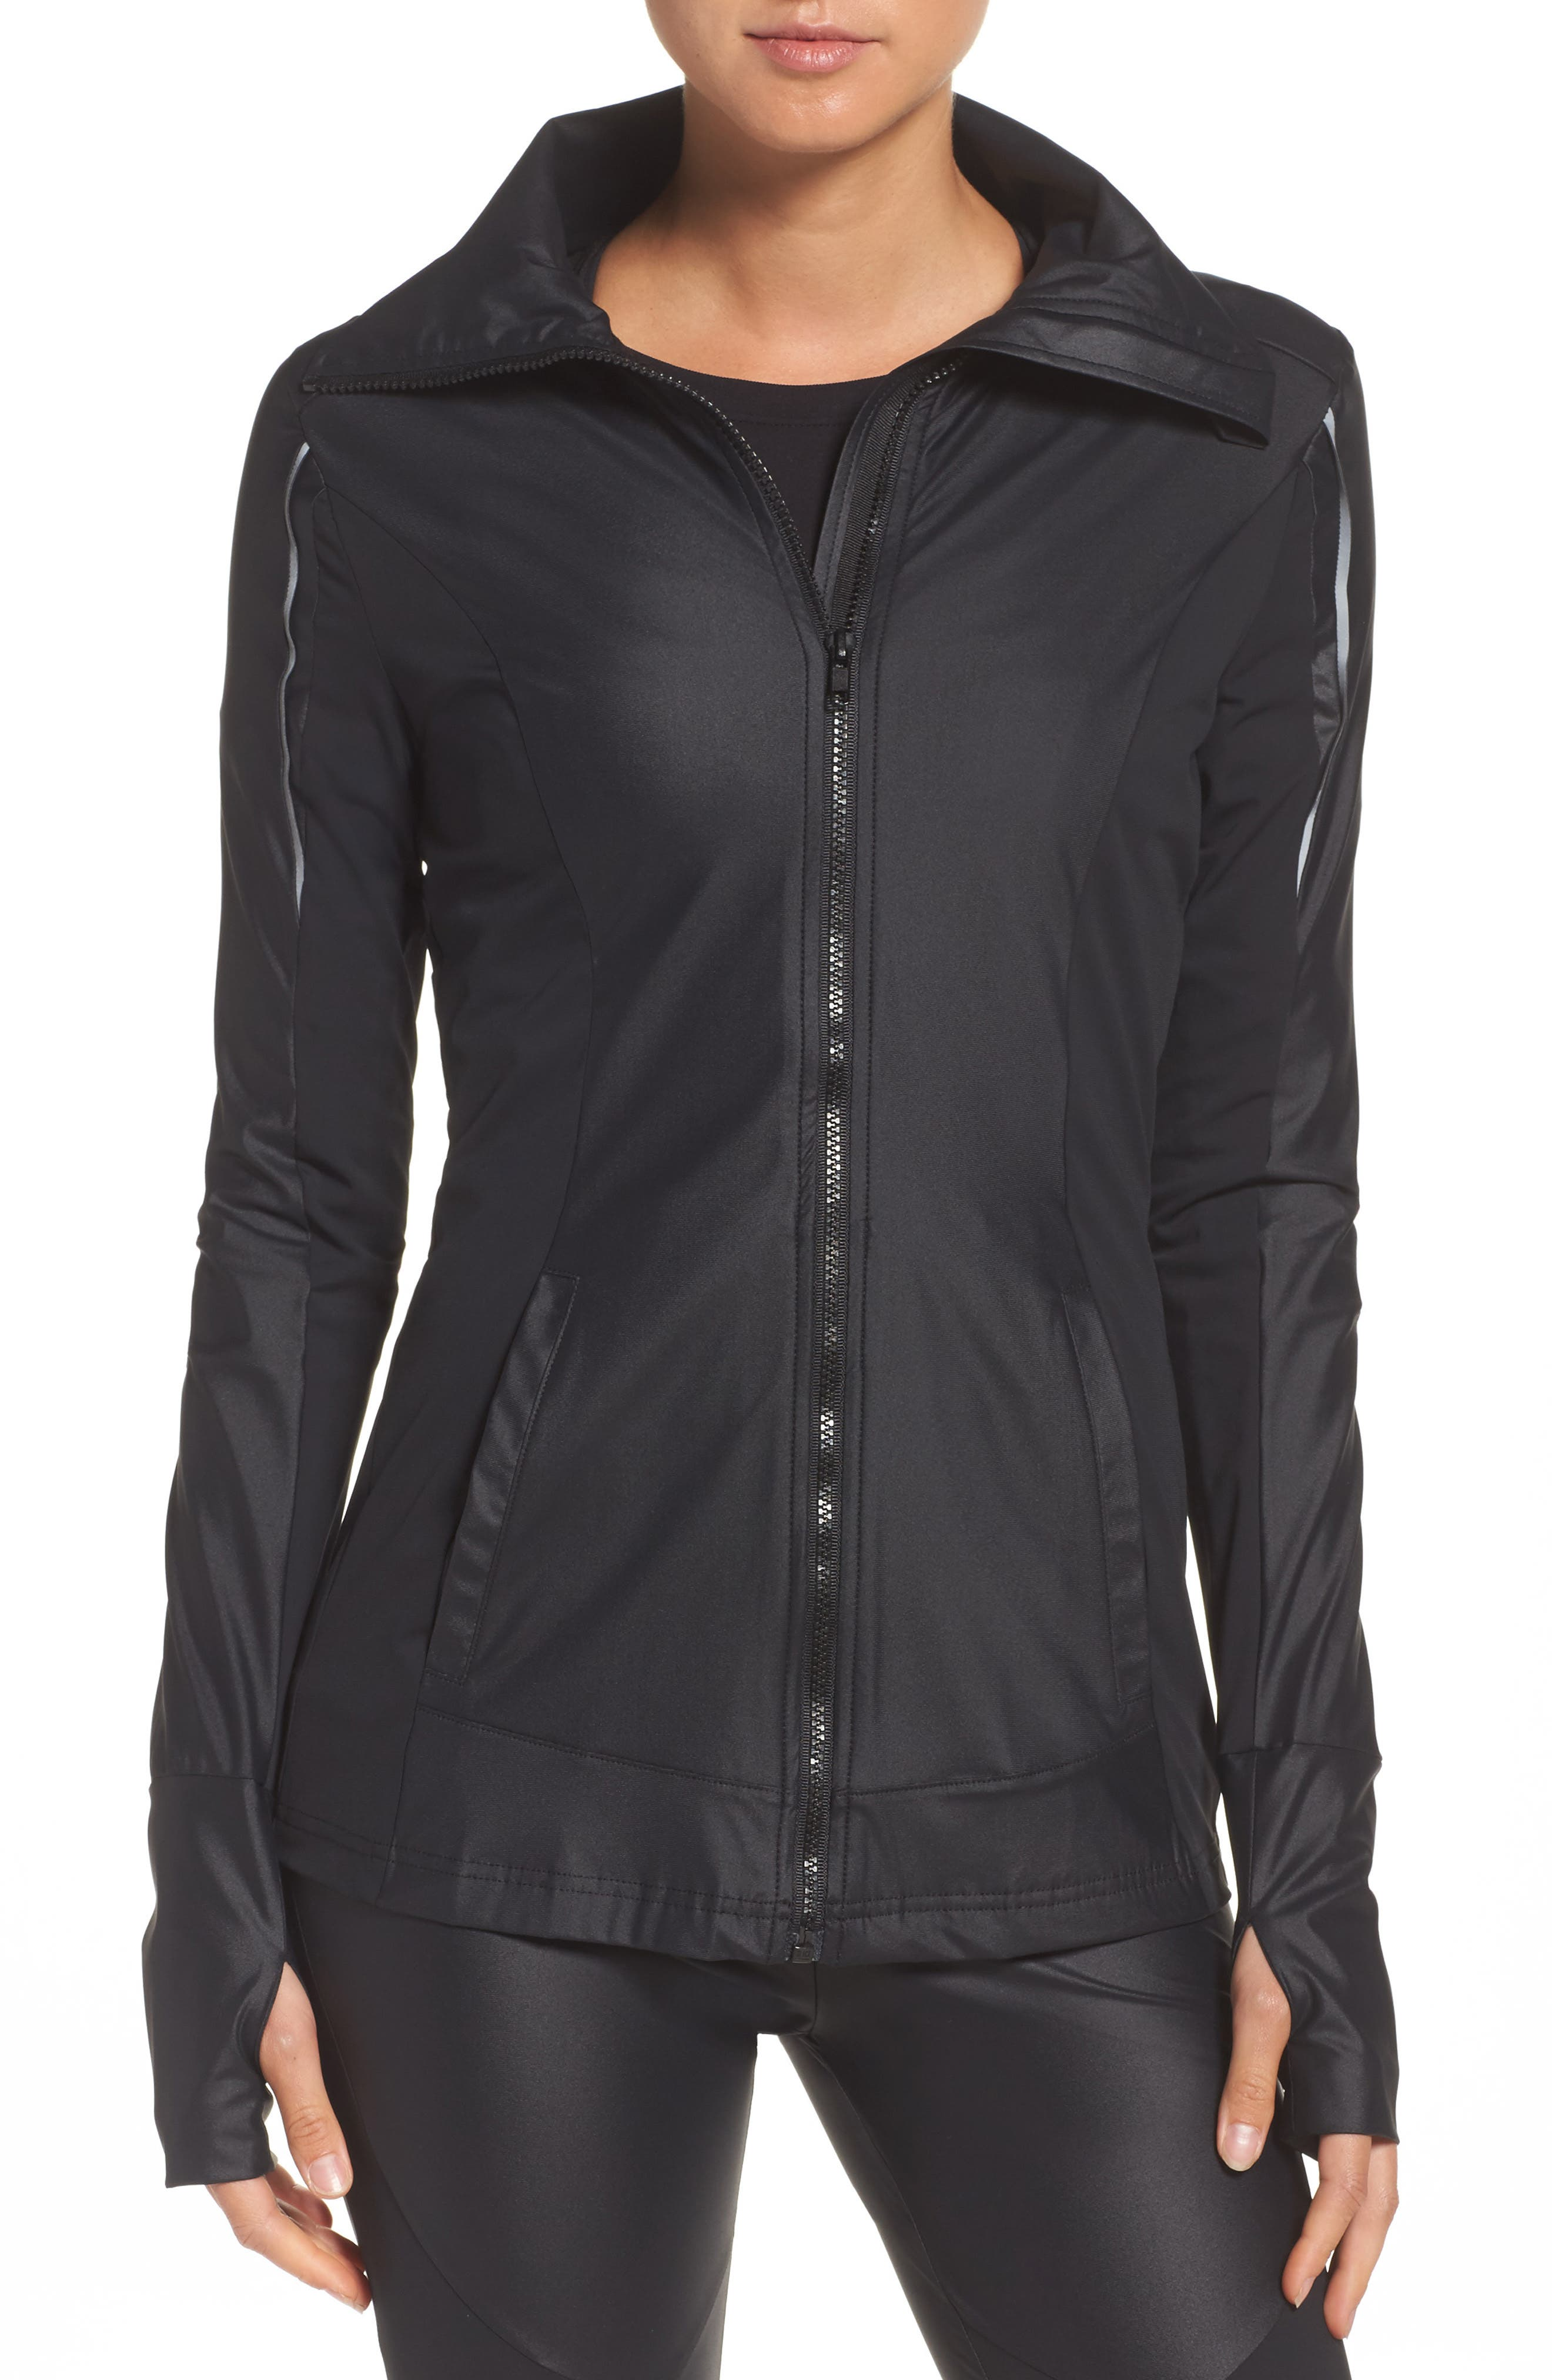 BoomBoom Athletica Lightweight Jacket,                         Main,                         color, Black